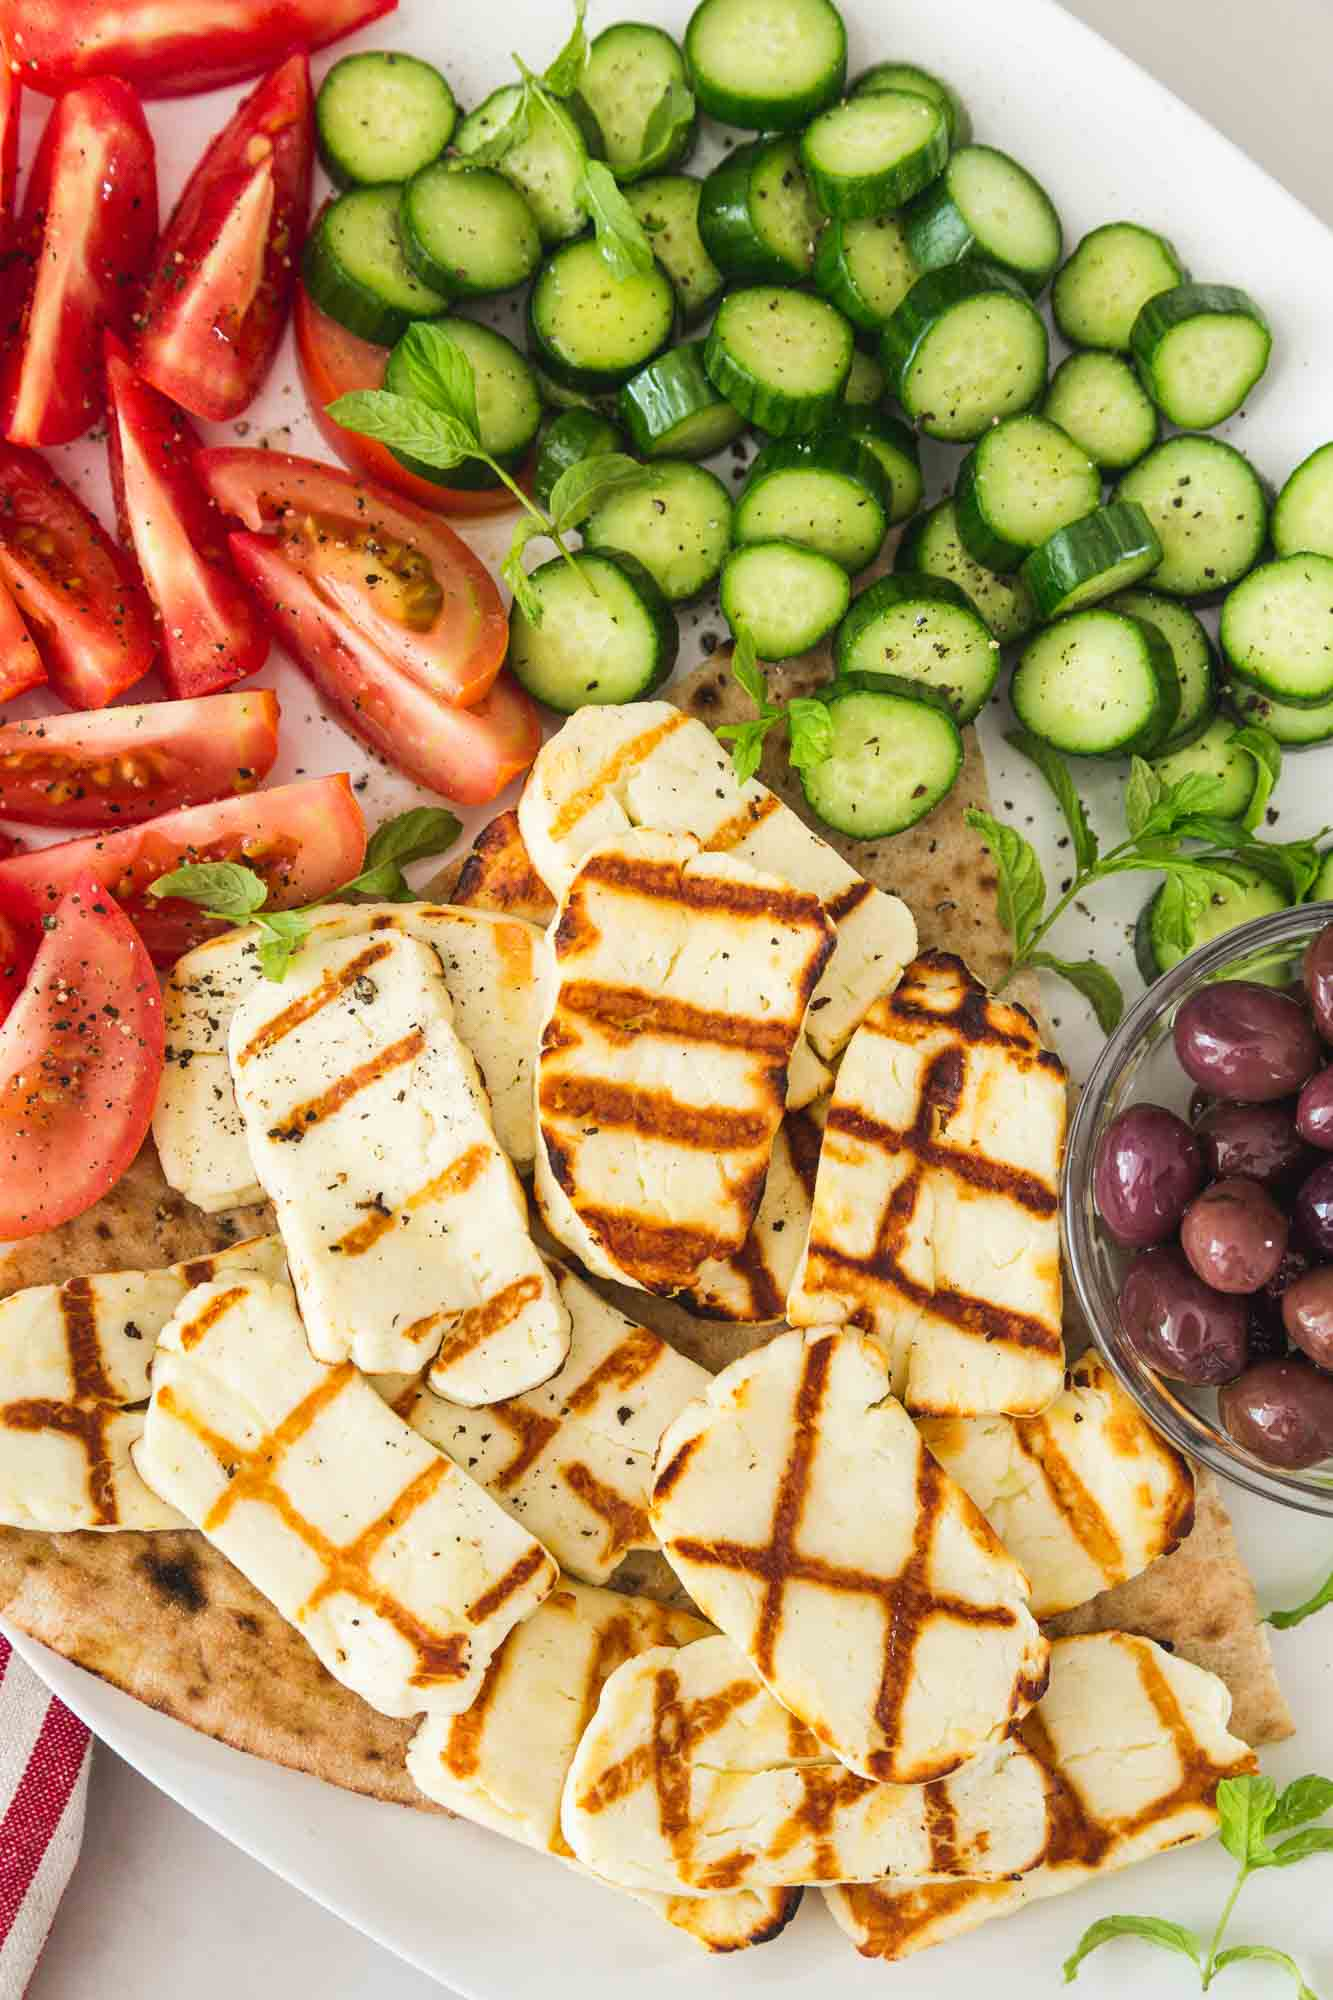 Overhead shot of grilled halloumi slices on a large white platter